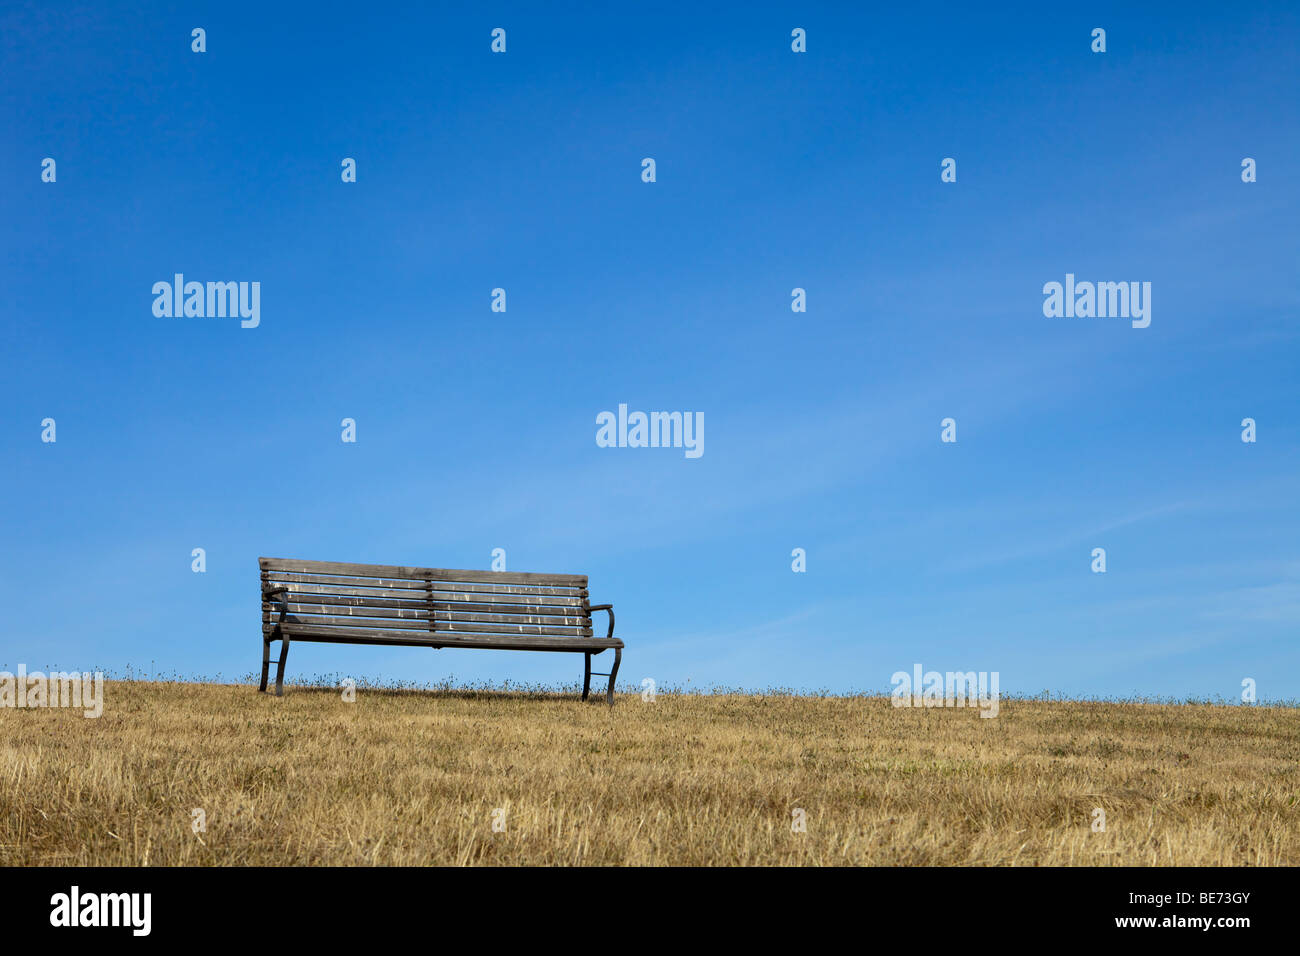 An empty park bench made of wood on dry grass is outlined against a blue sky with light clouds. - Stock Image